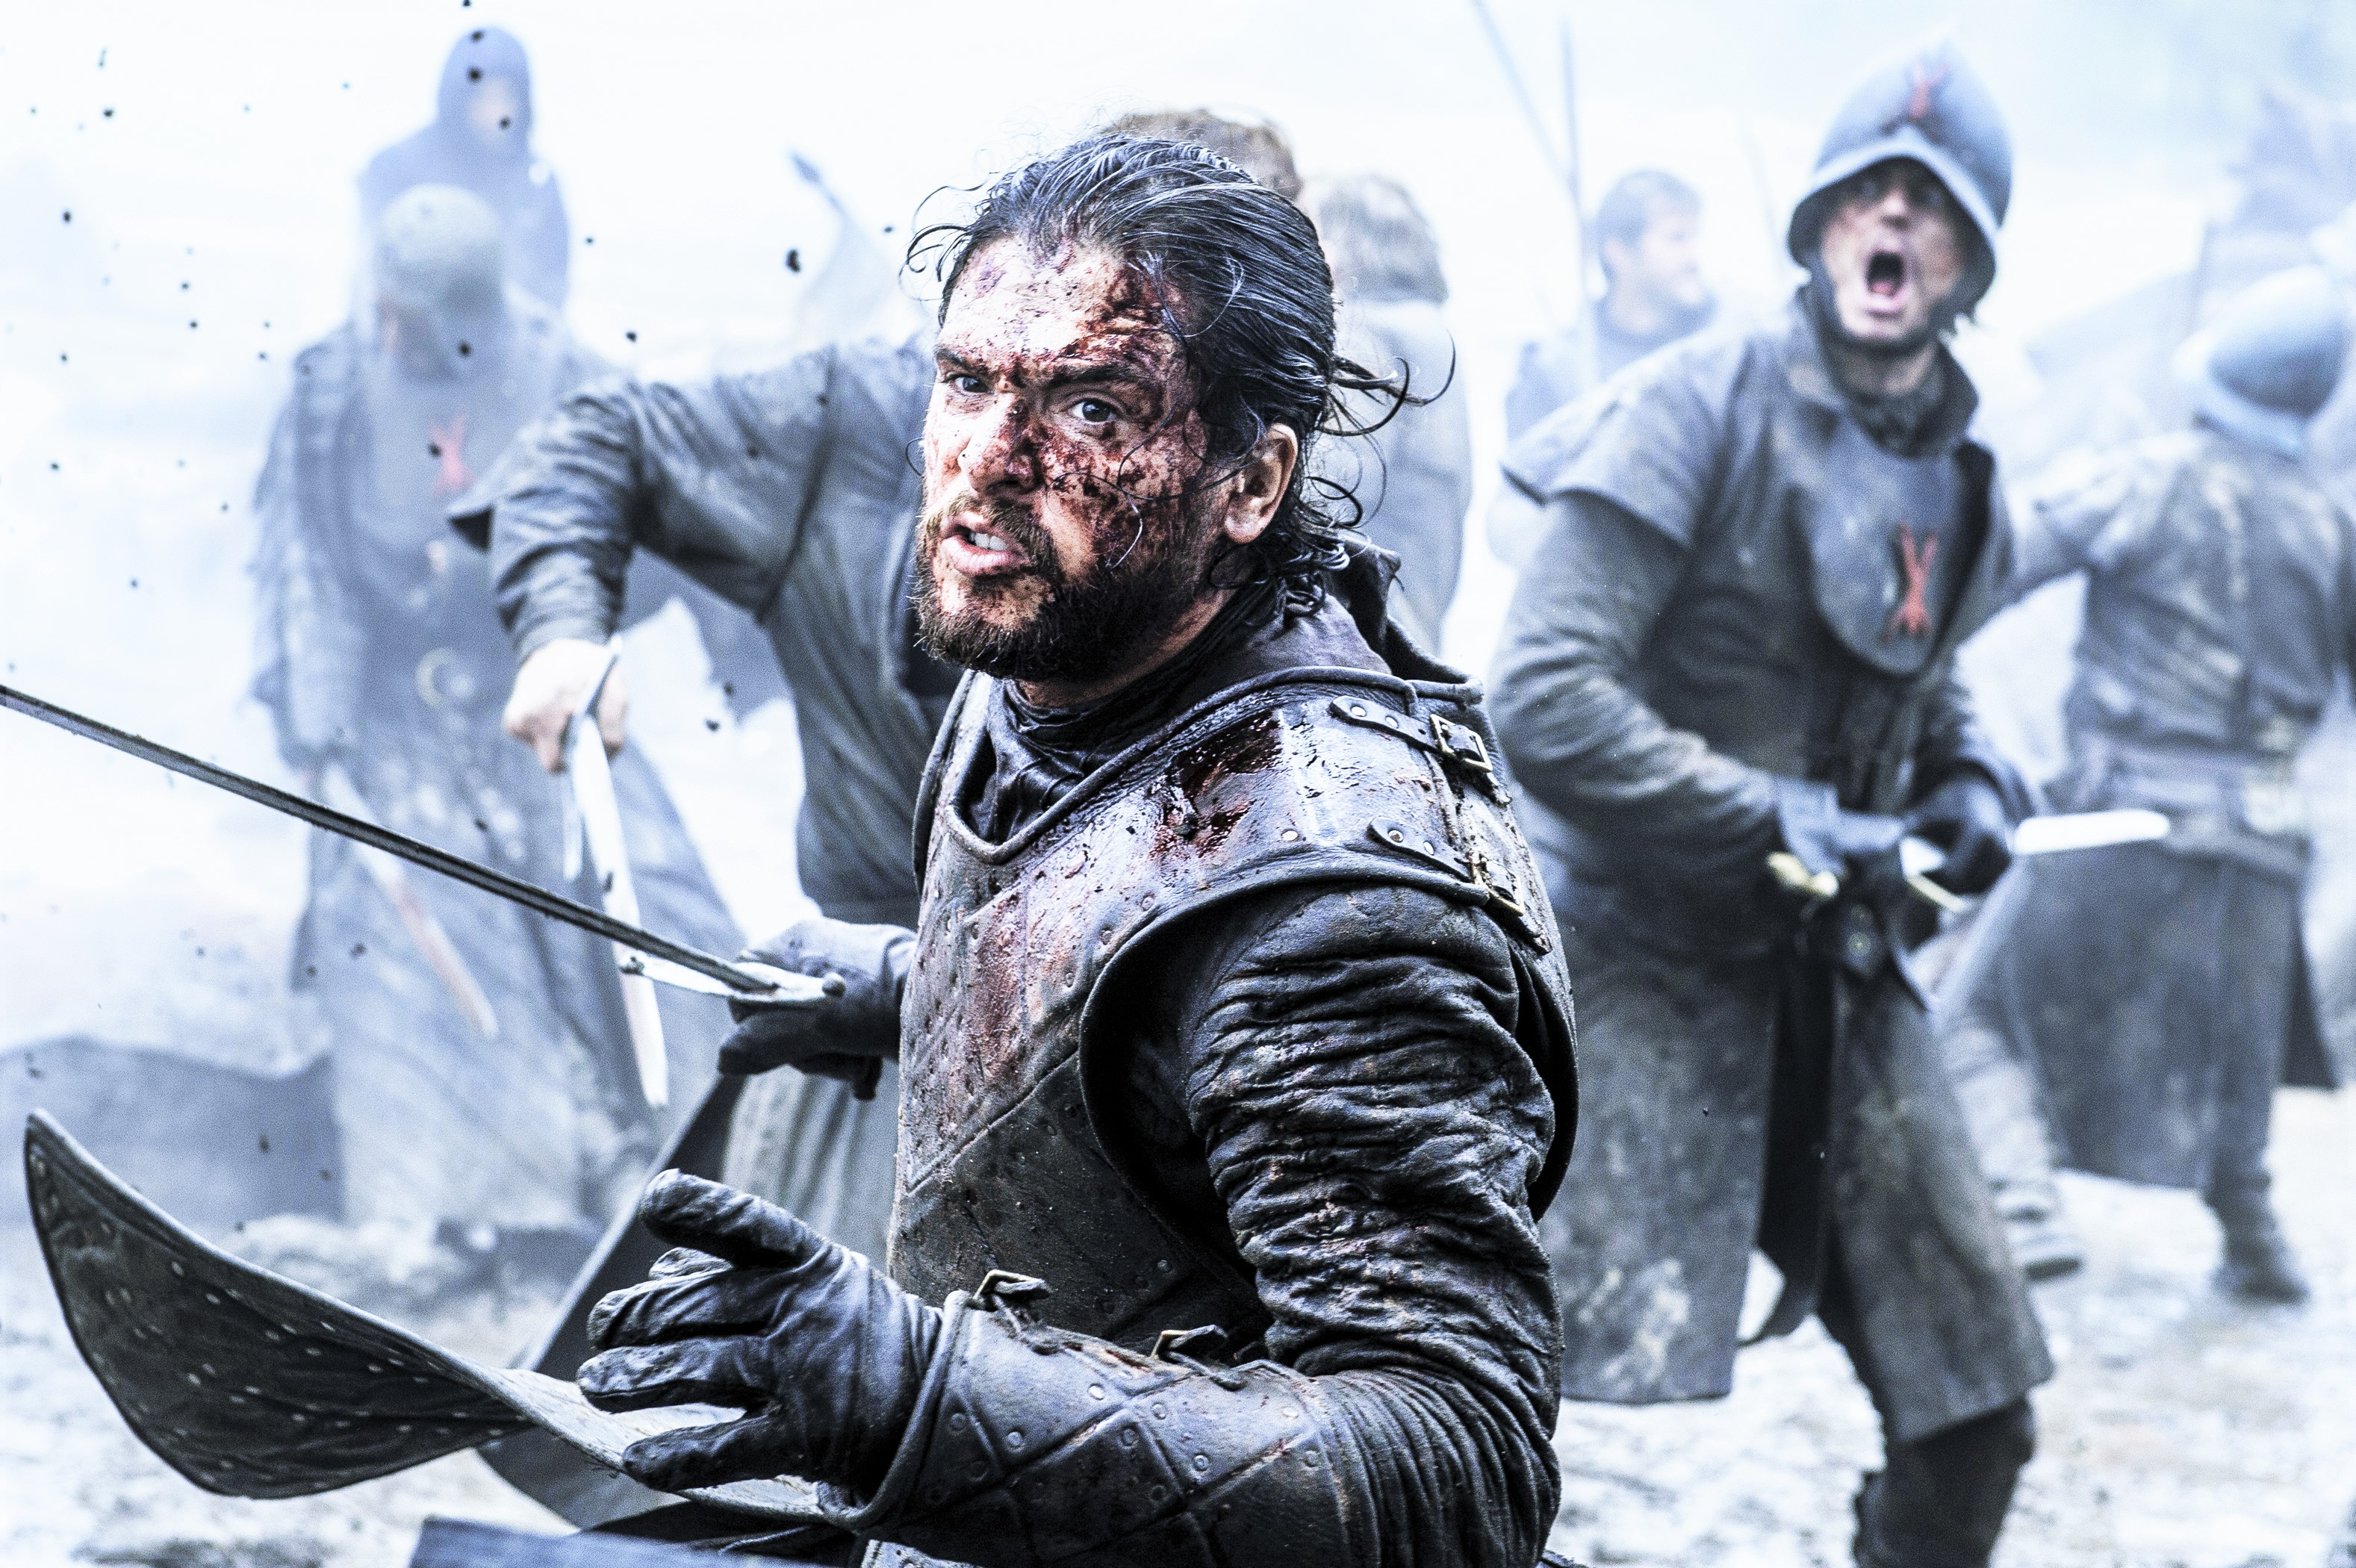 A Clash of Kings: Who is the Deadliest Warrior in all of Game of Thrones? (Part 2)